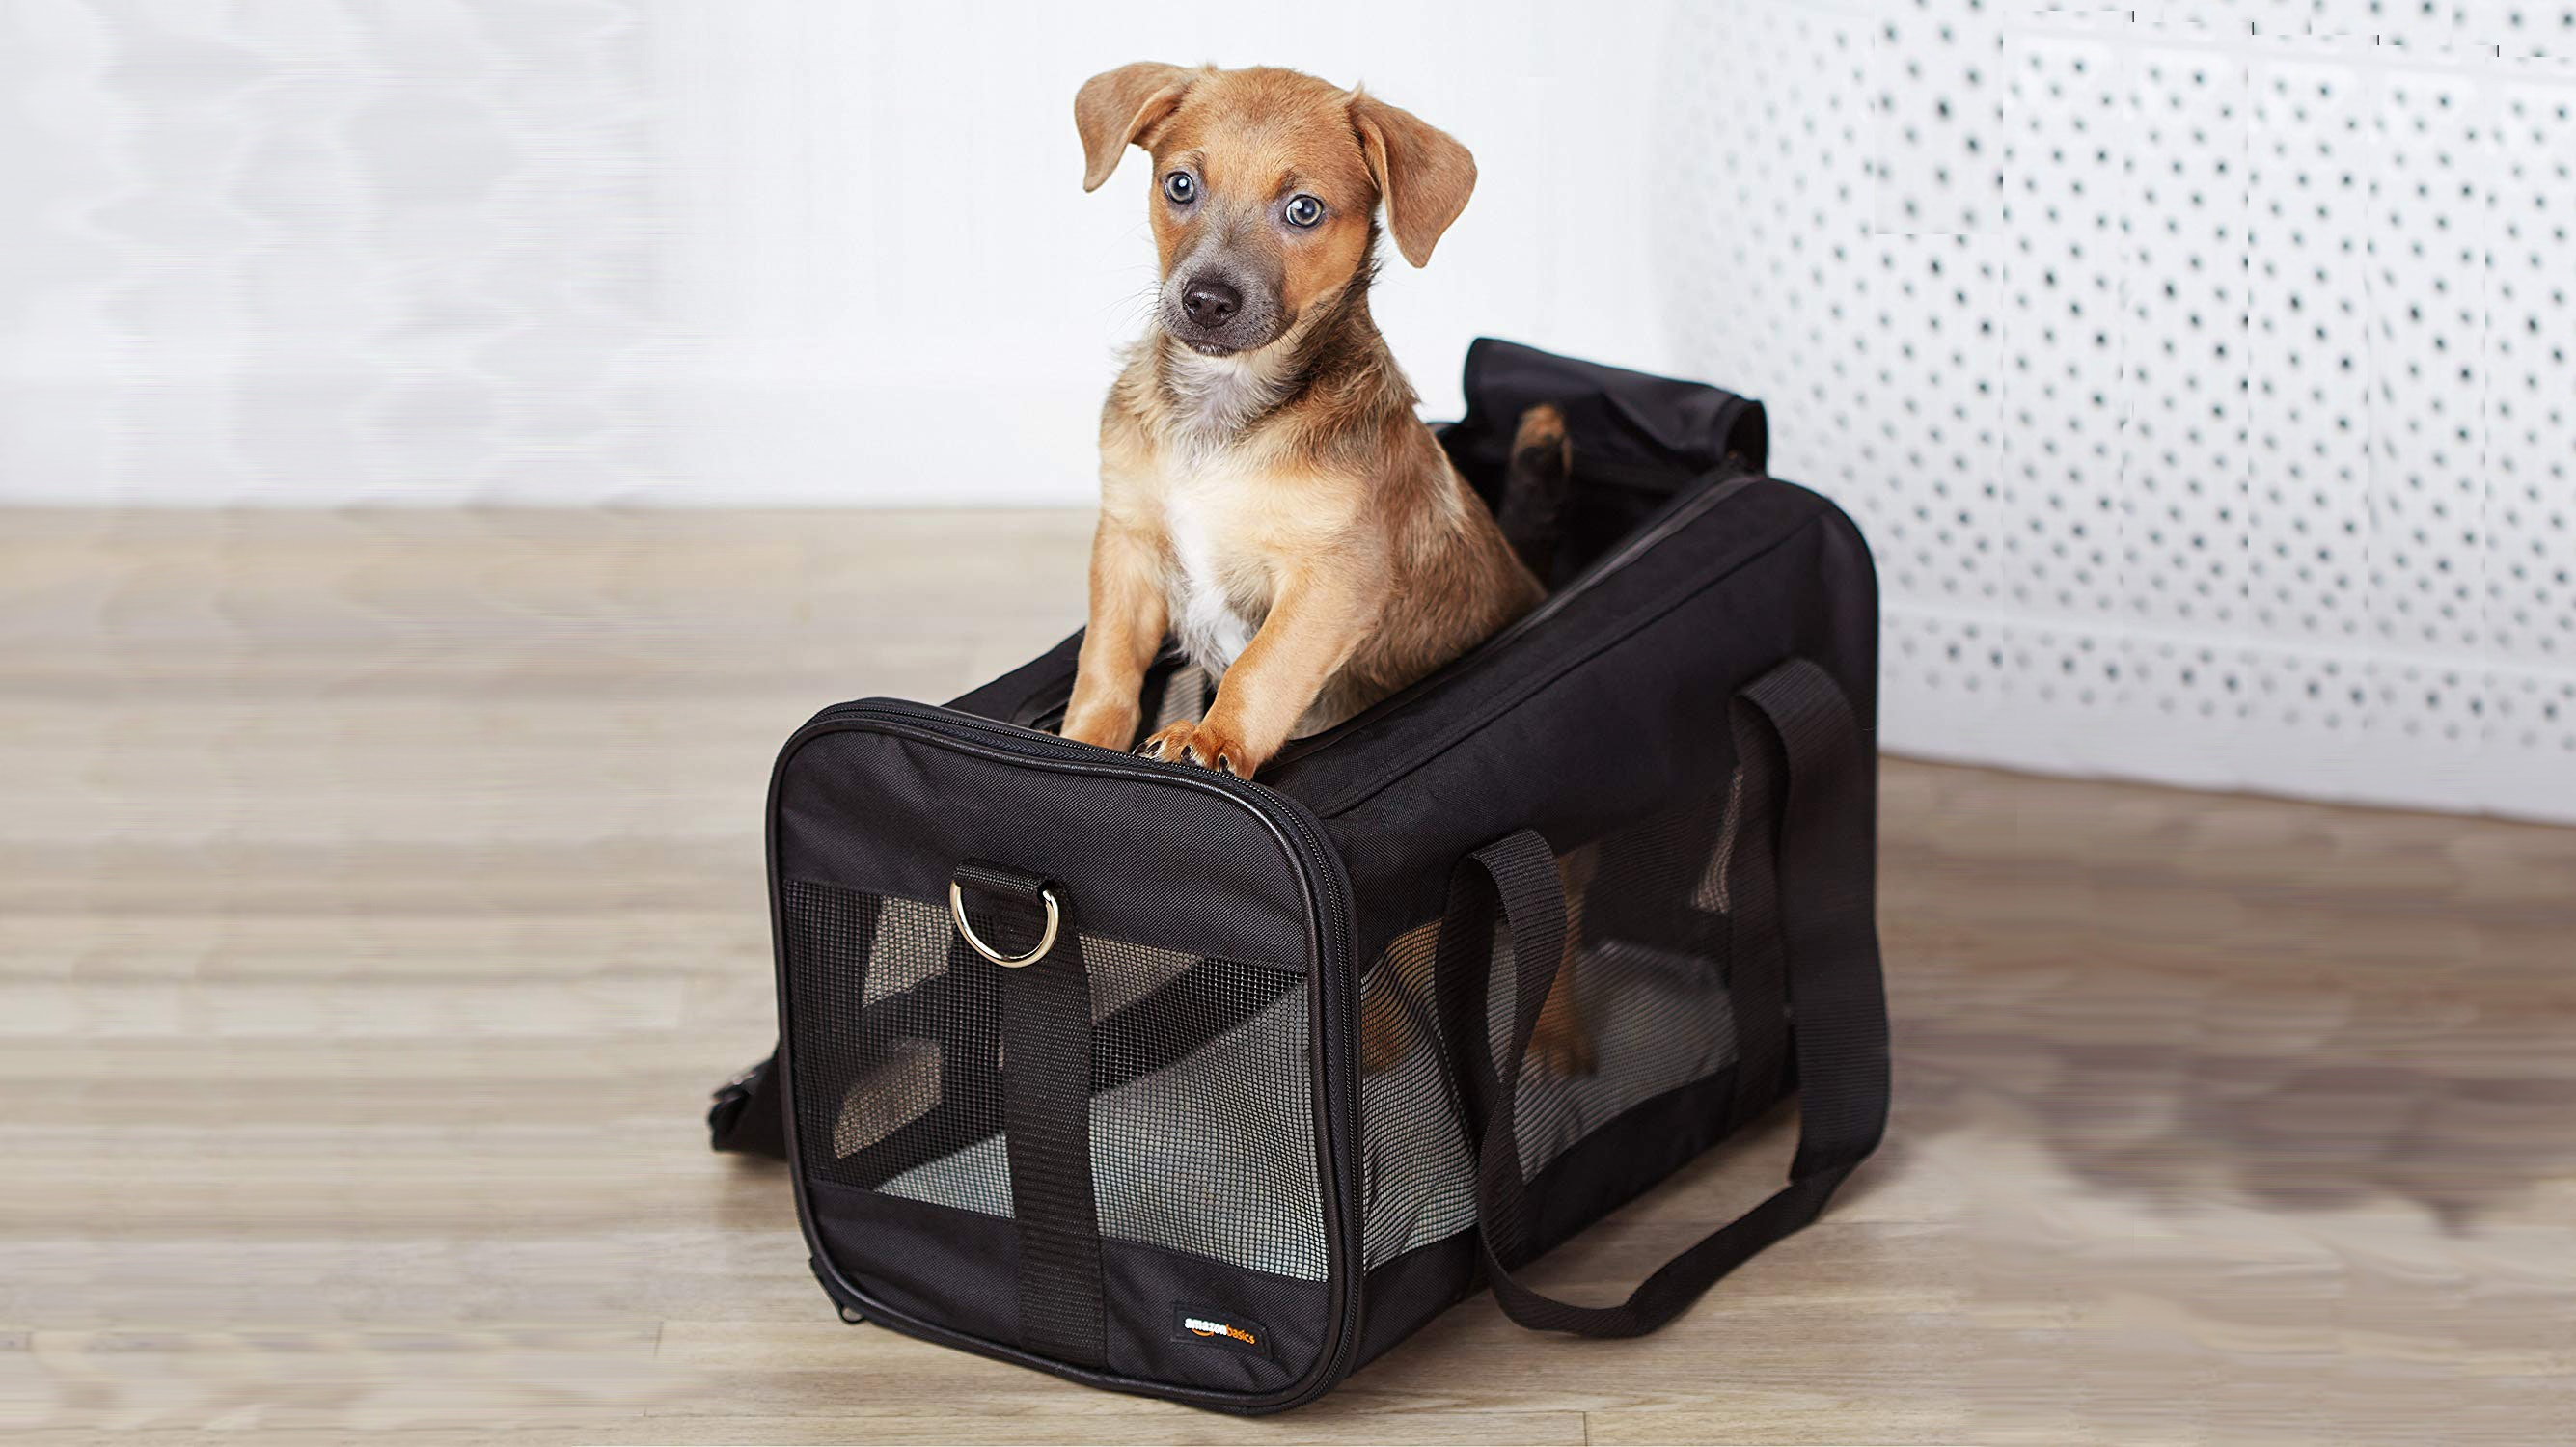 The 7 Best Dog Carriers For Airline Travel